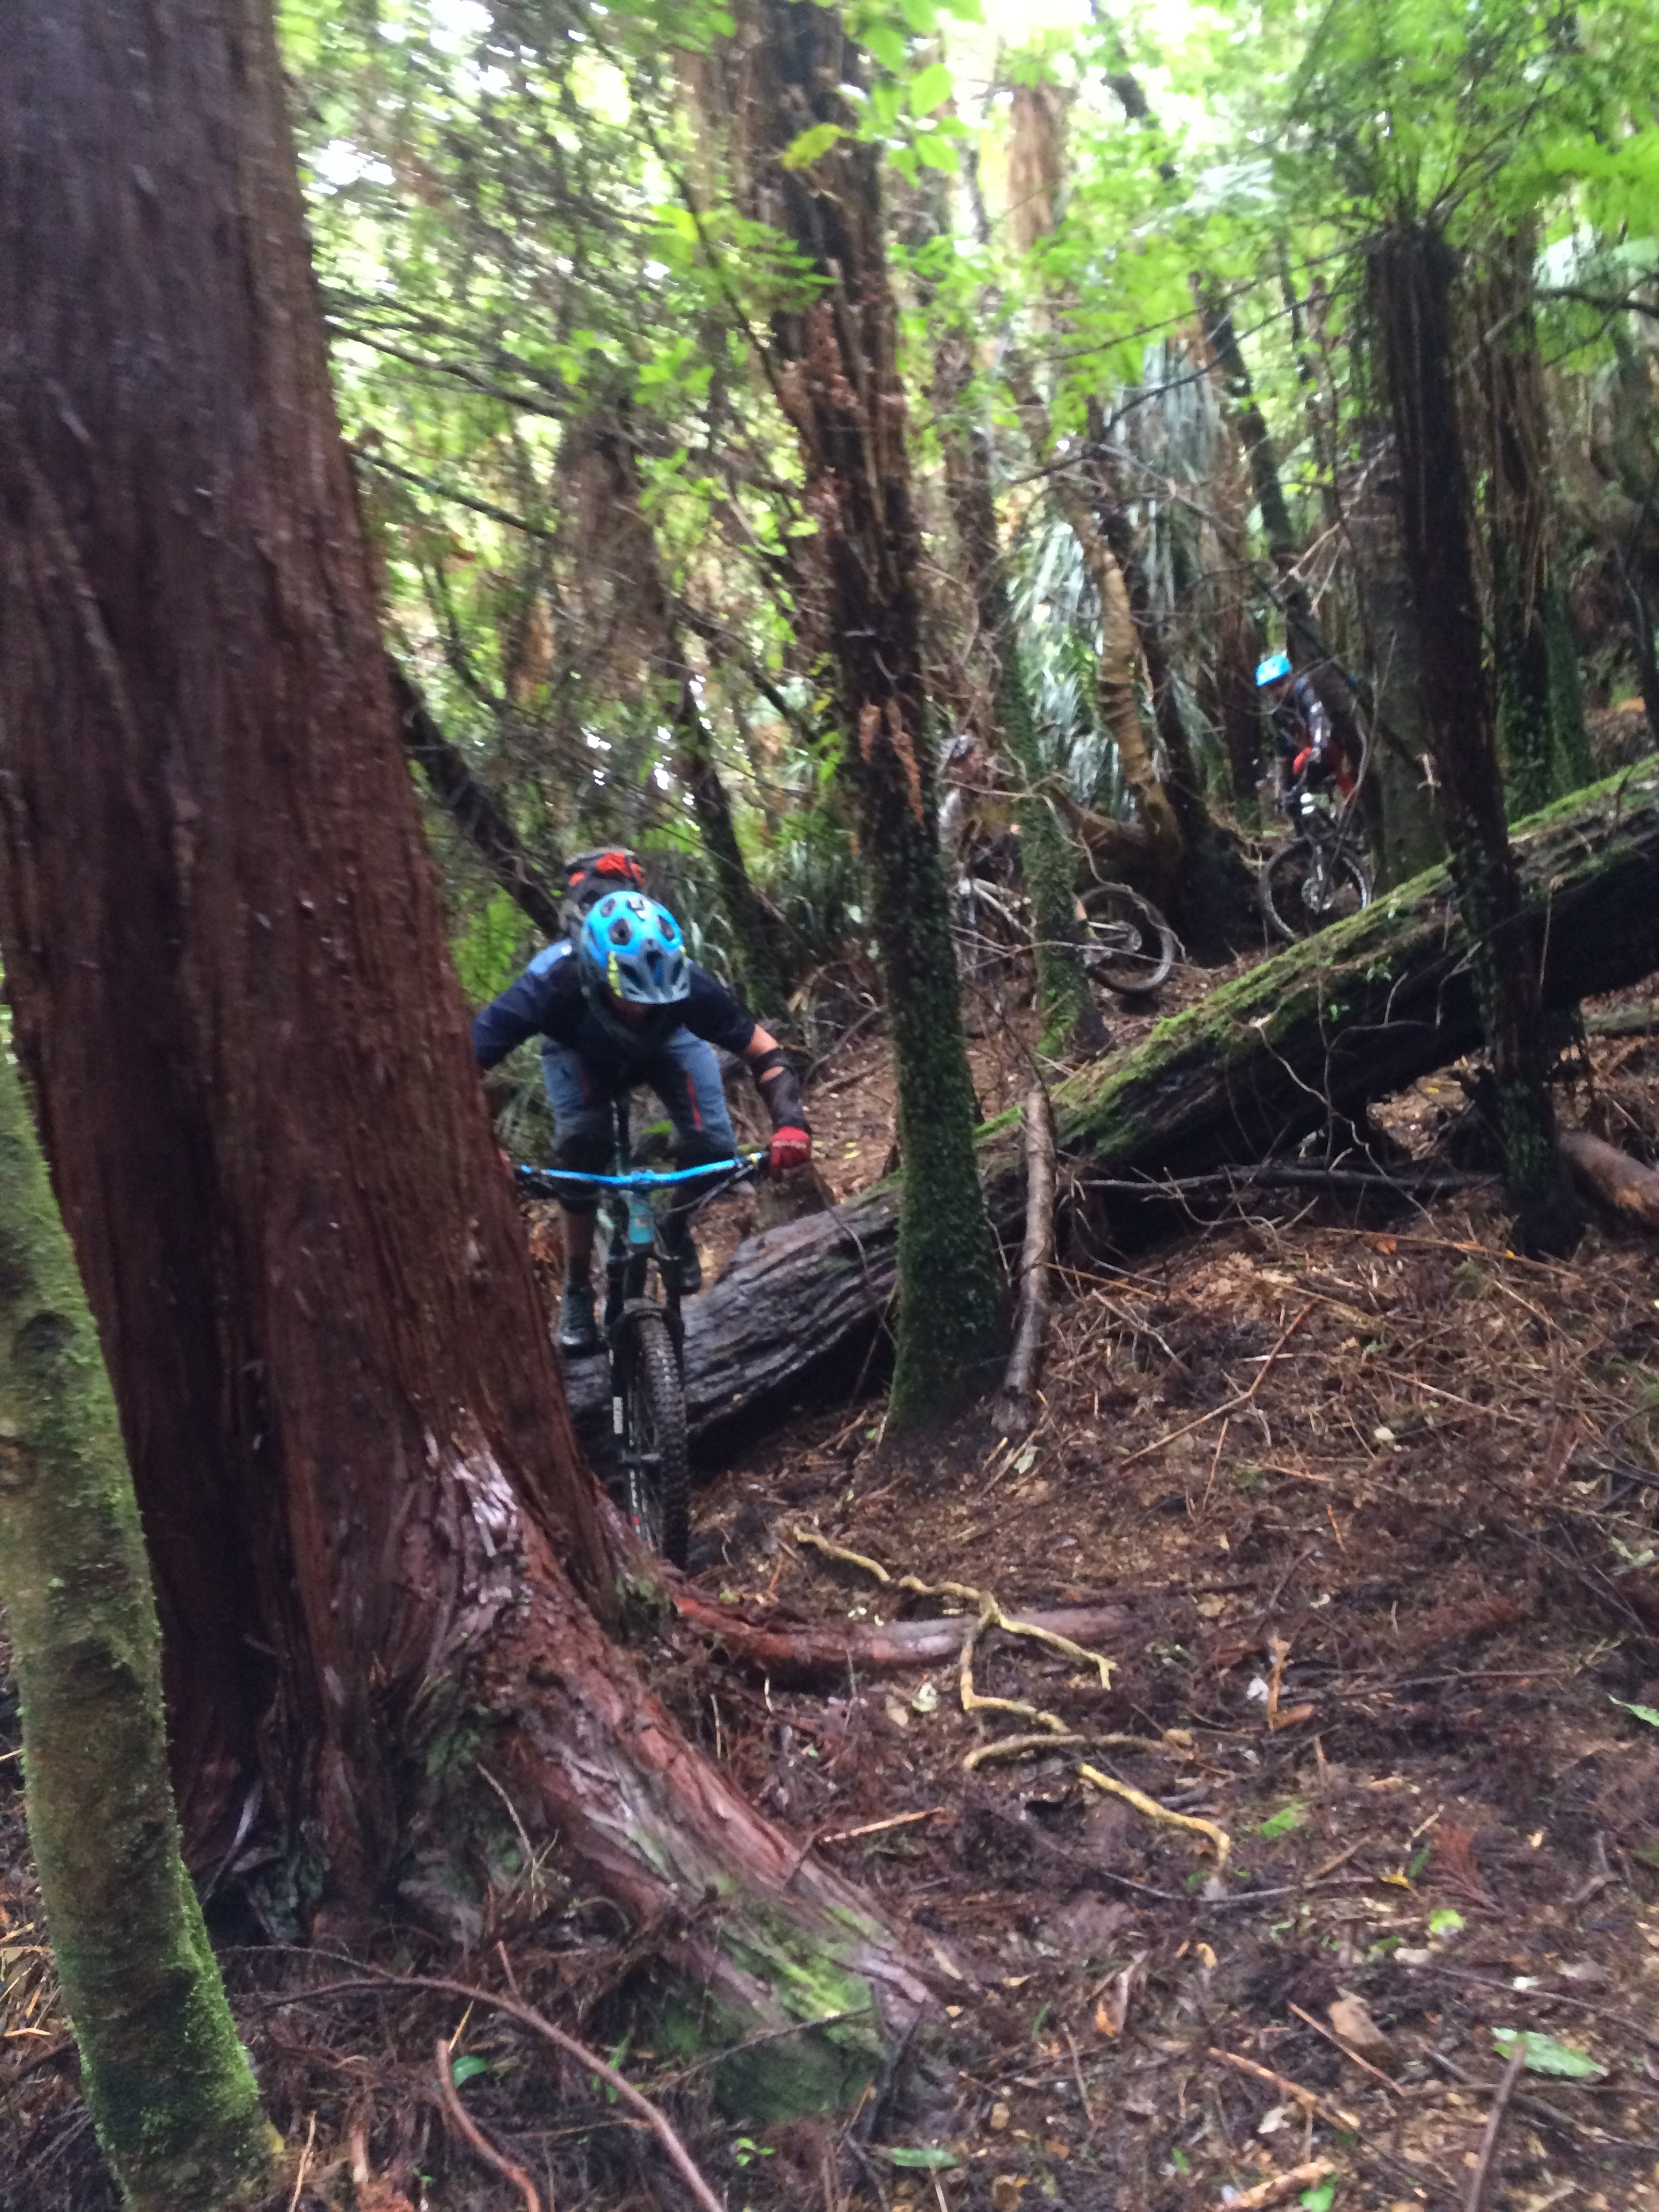 Hunter Robb showing some form. Garden of Eden transition trail